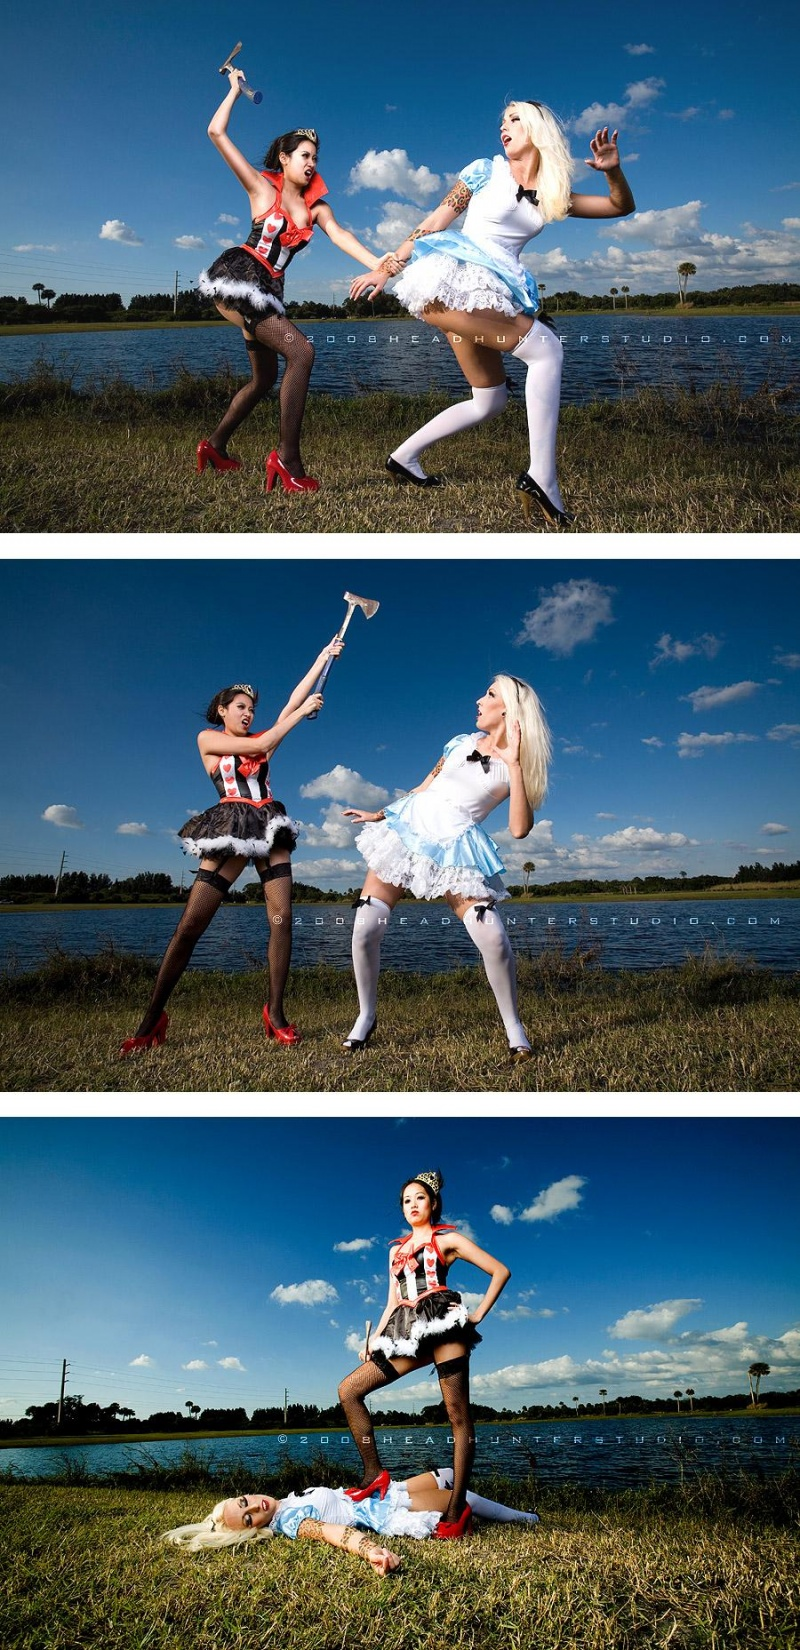 Female model photo shoot of Xana and Bunny Electric by H E A D H U N T E R in WONDERLAND~